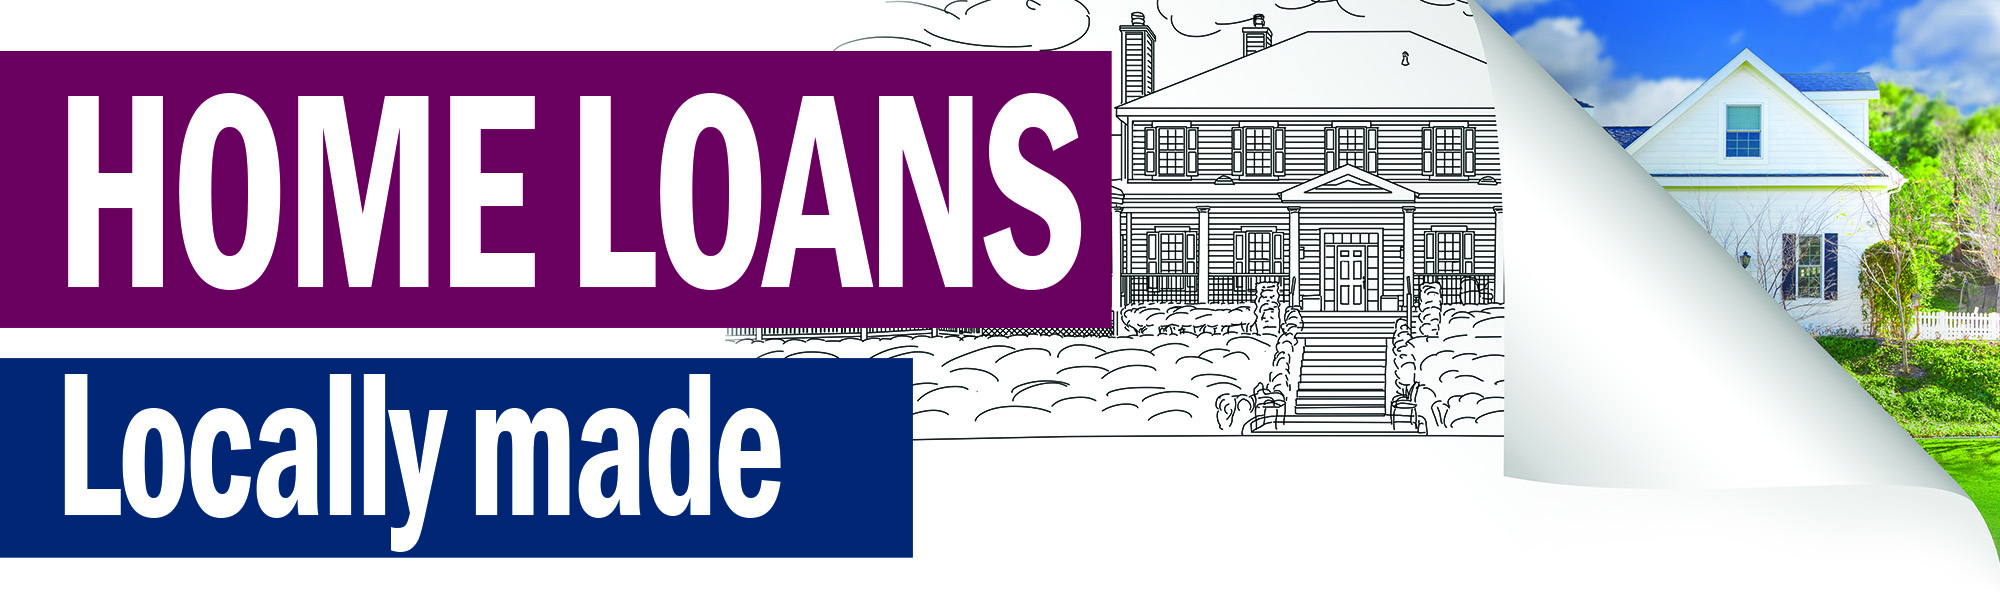 WSB 19 Home Loans Website Graphic